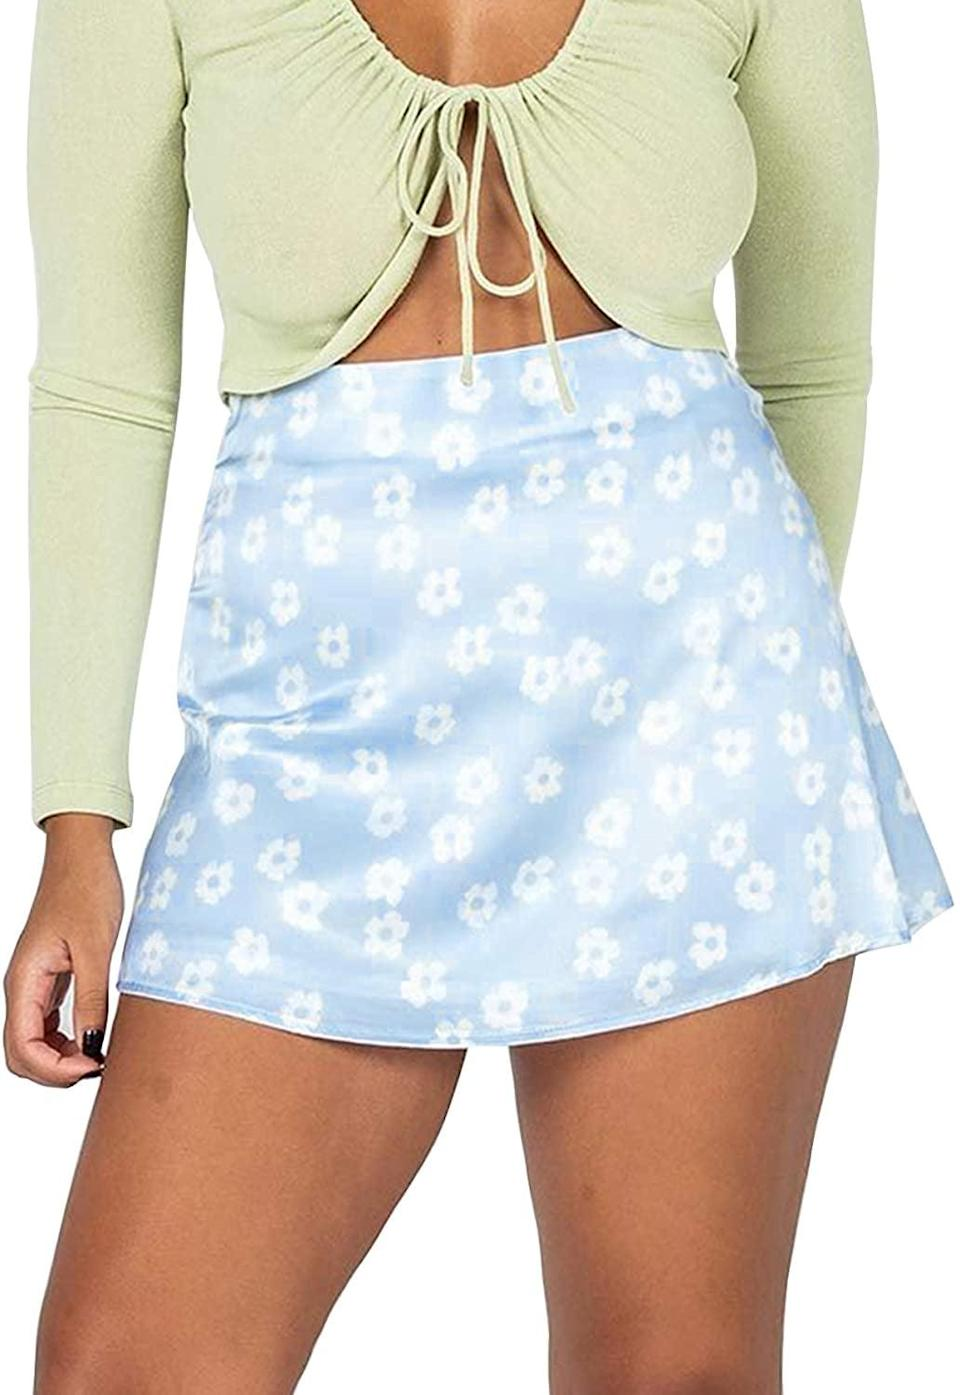 <p>Style this <span>Lyaner Floral Print Satin Silk Mini Short Skirt</span> ($13-$19) with a lime-green crop top for a stunning summer look.</p>